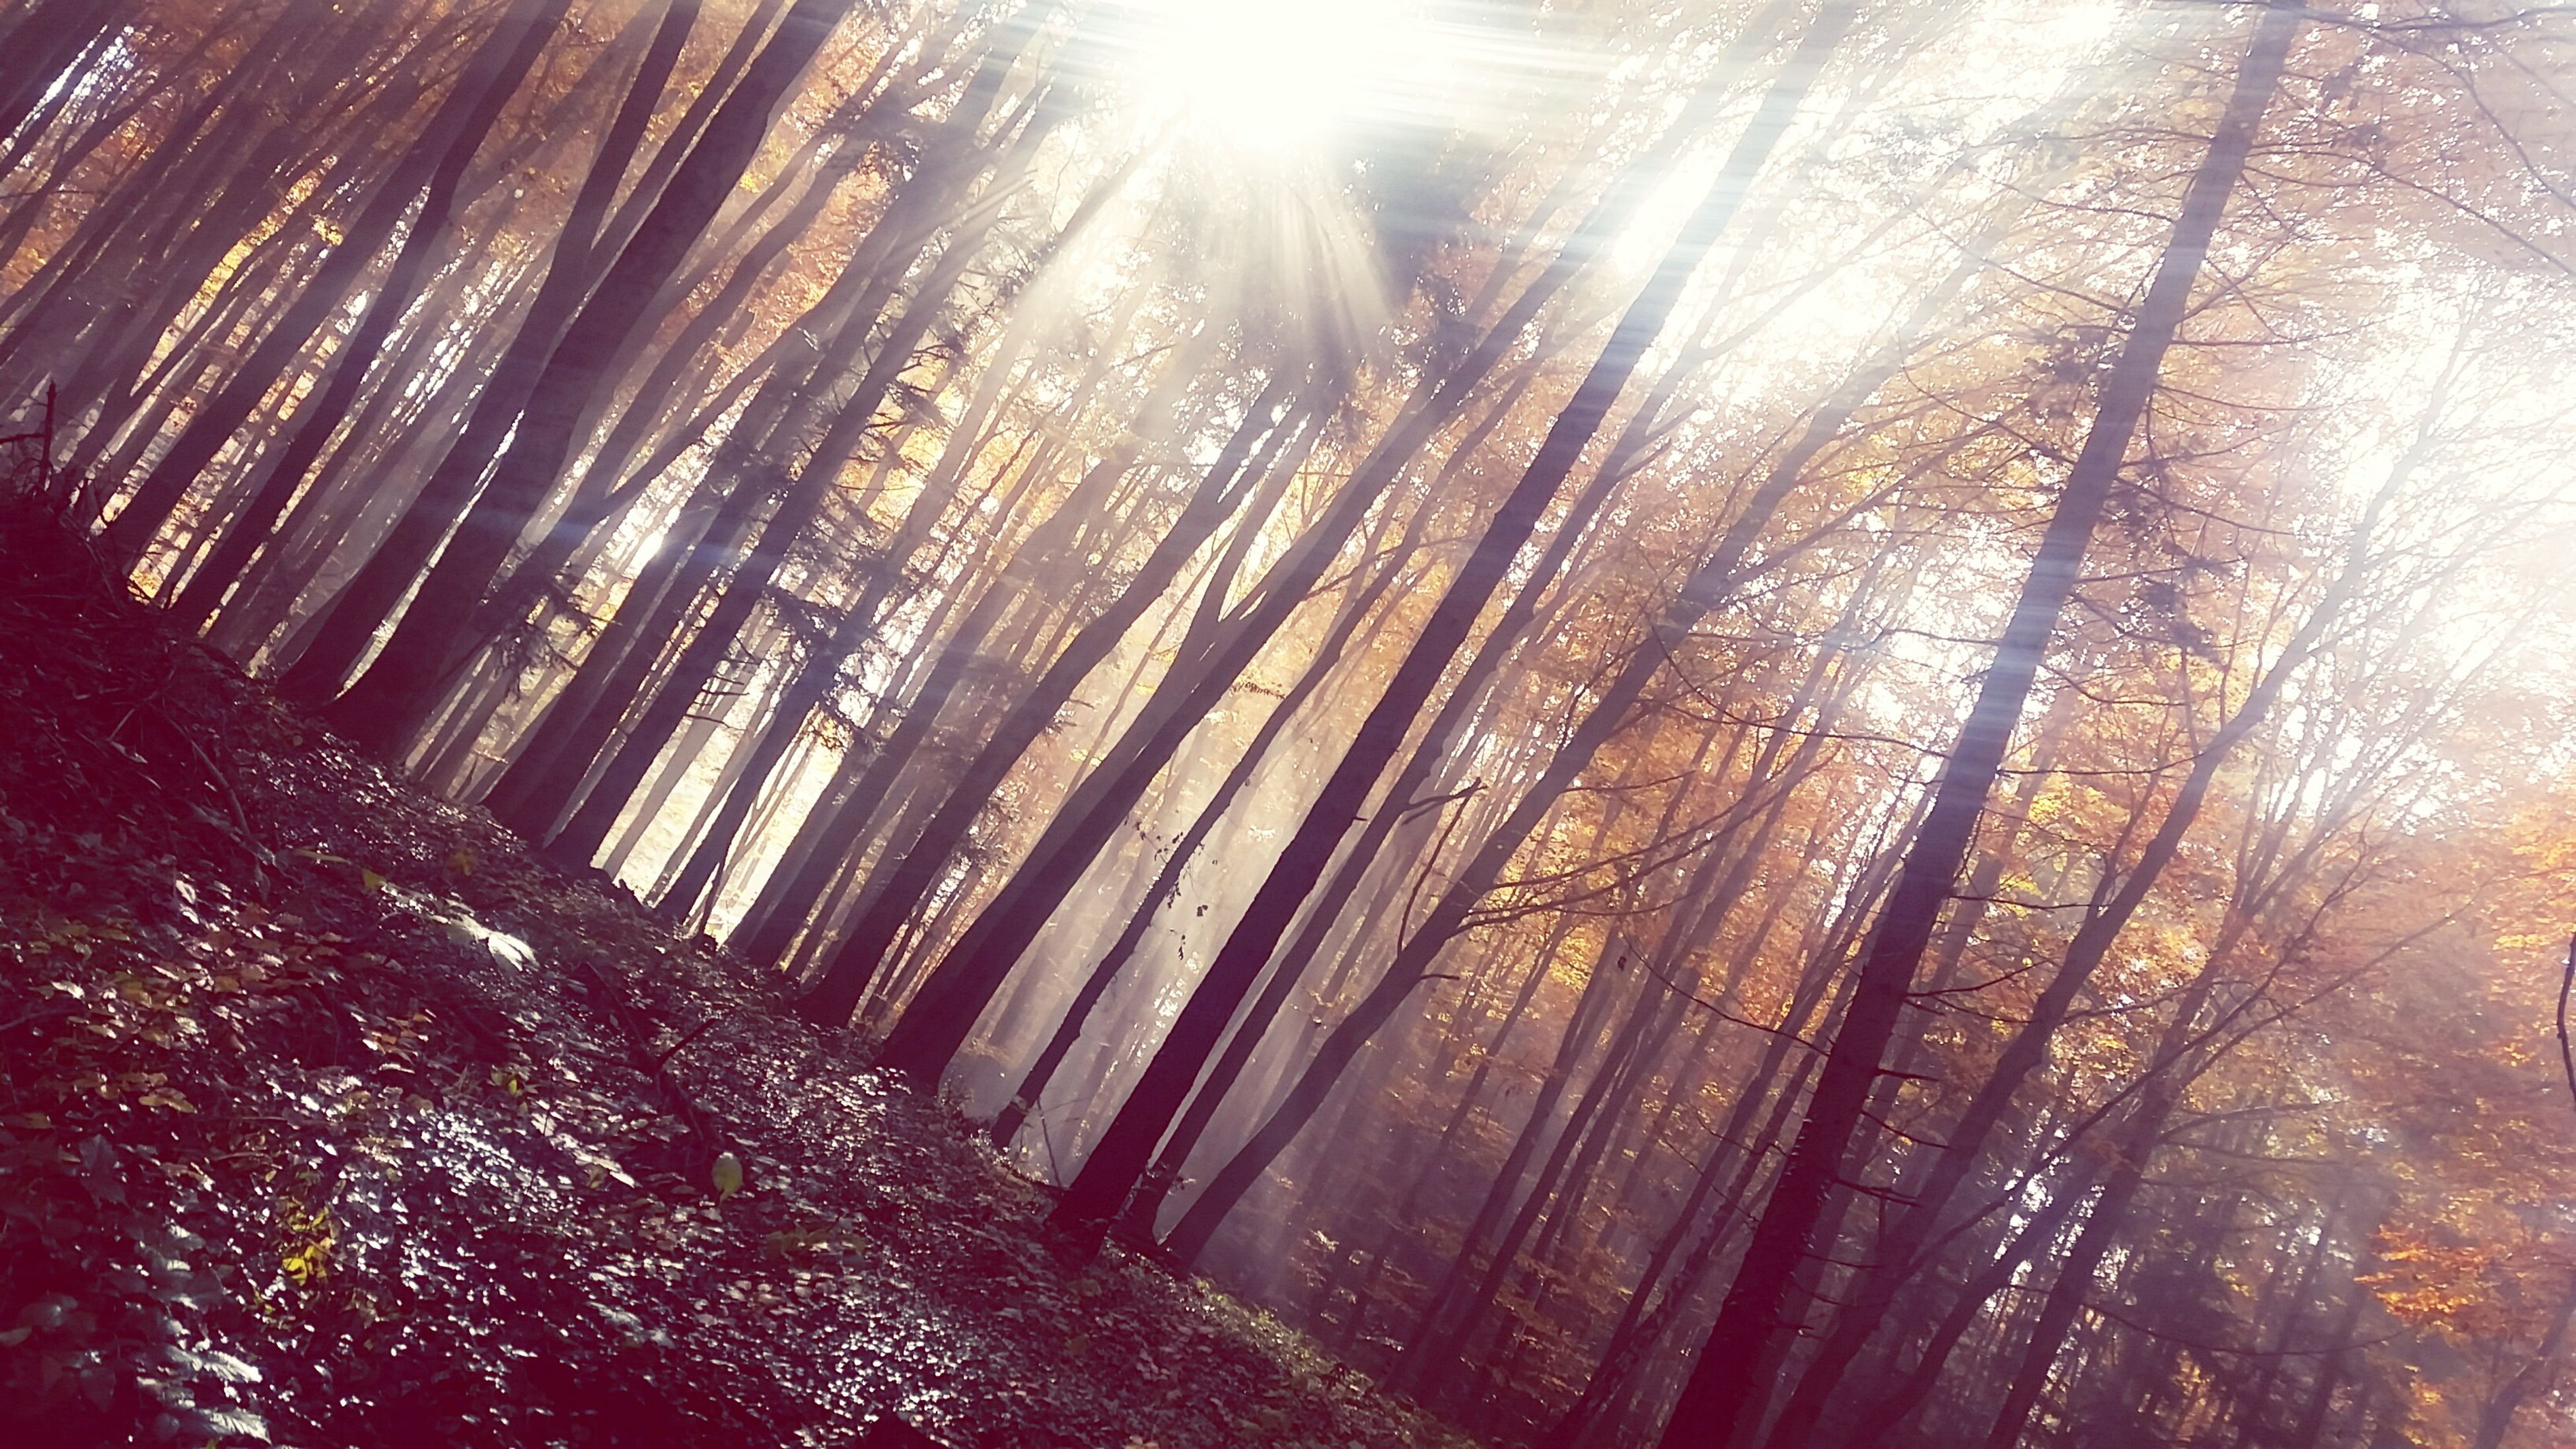 tree, sunbeam, lens flare, sunlight, sun, low angle view, nature, tranquility, forest, growth, sunny, tree trunk, outdoors, day, woodland, no people, beauty in nature, branch, bright, scenics